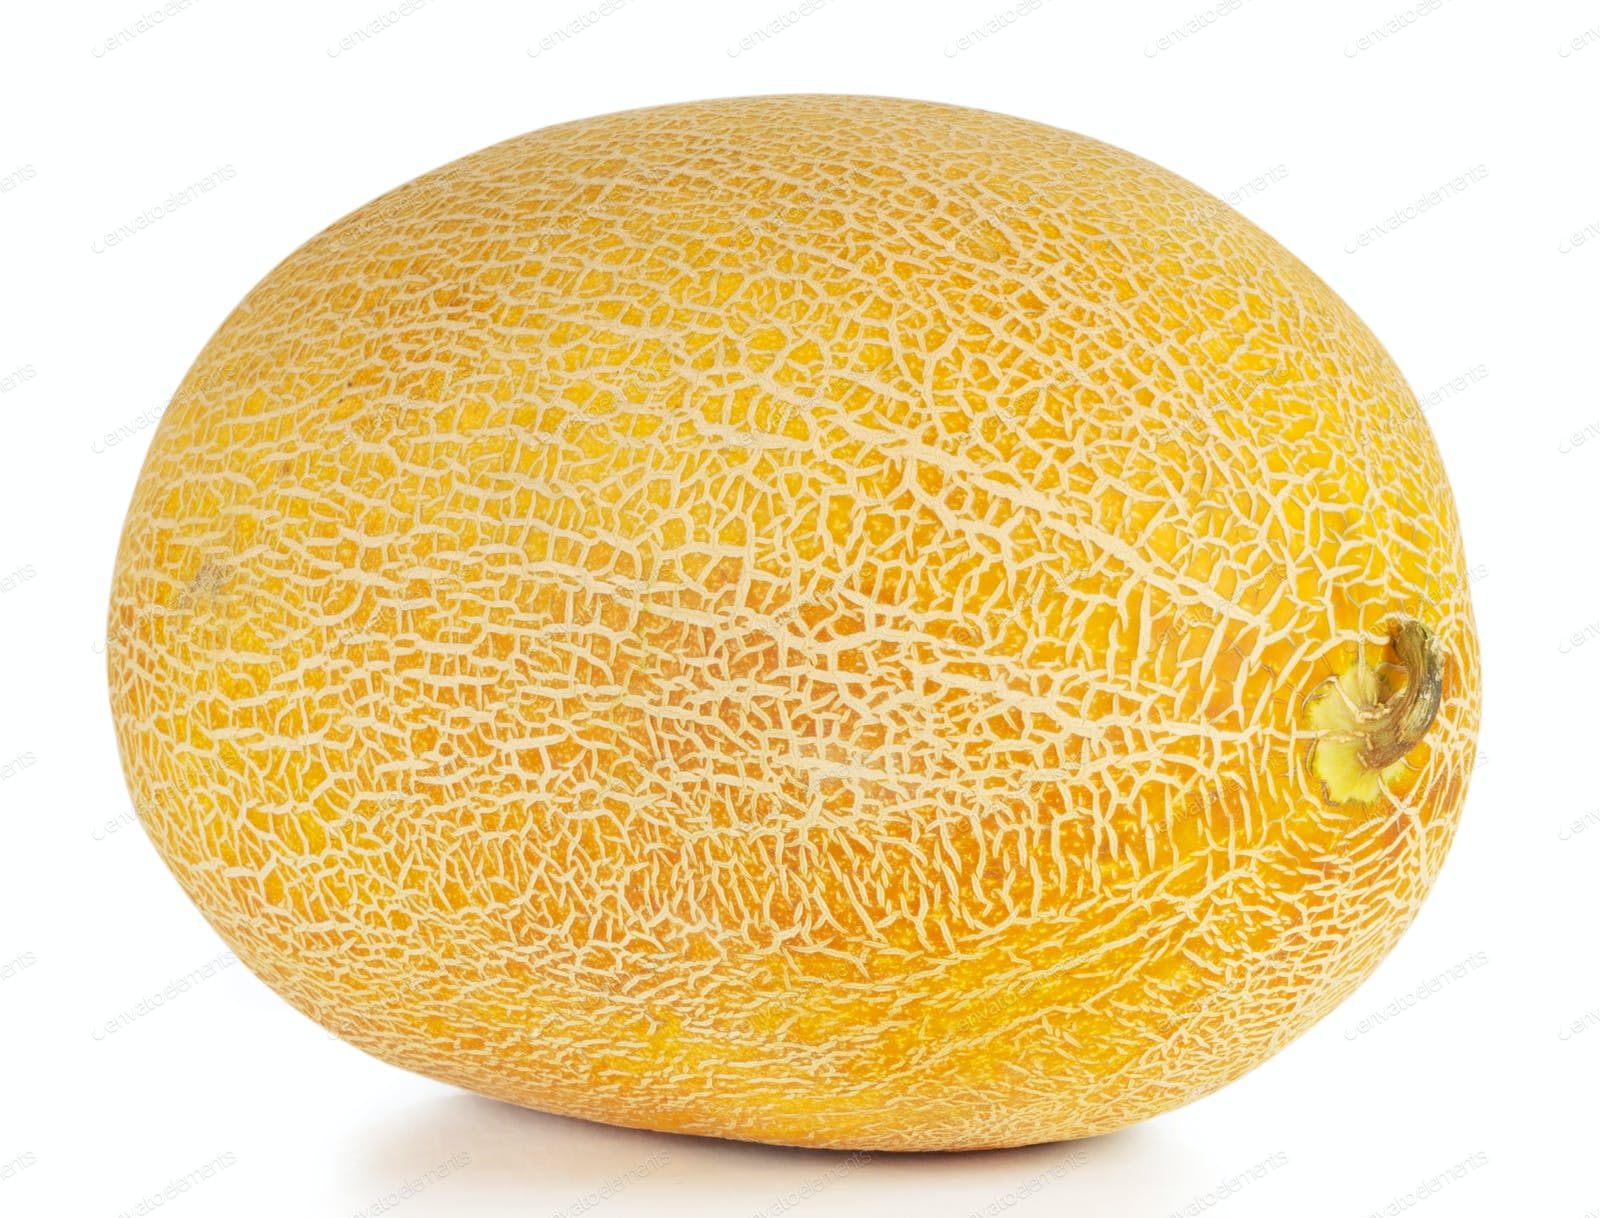 Sweet Ripe Yellow Oval Melon Photo By Alexlukin On Envato Elements Cantaloupe vines are trailing and are slightly hairy with simple oval leaves. sweet ripe yellow oval melon photo by alexlukin on envato elements